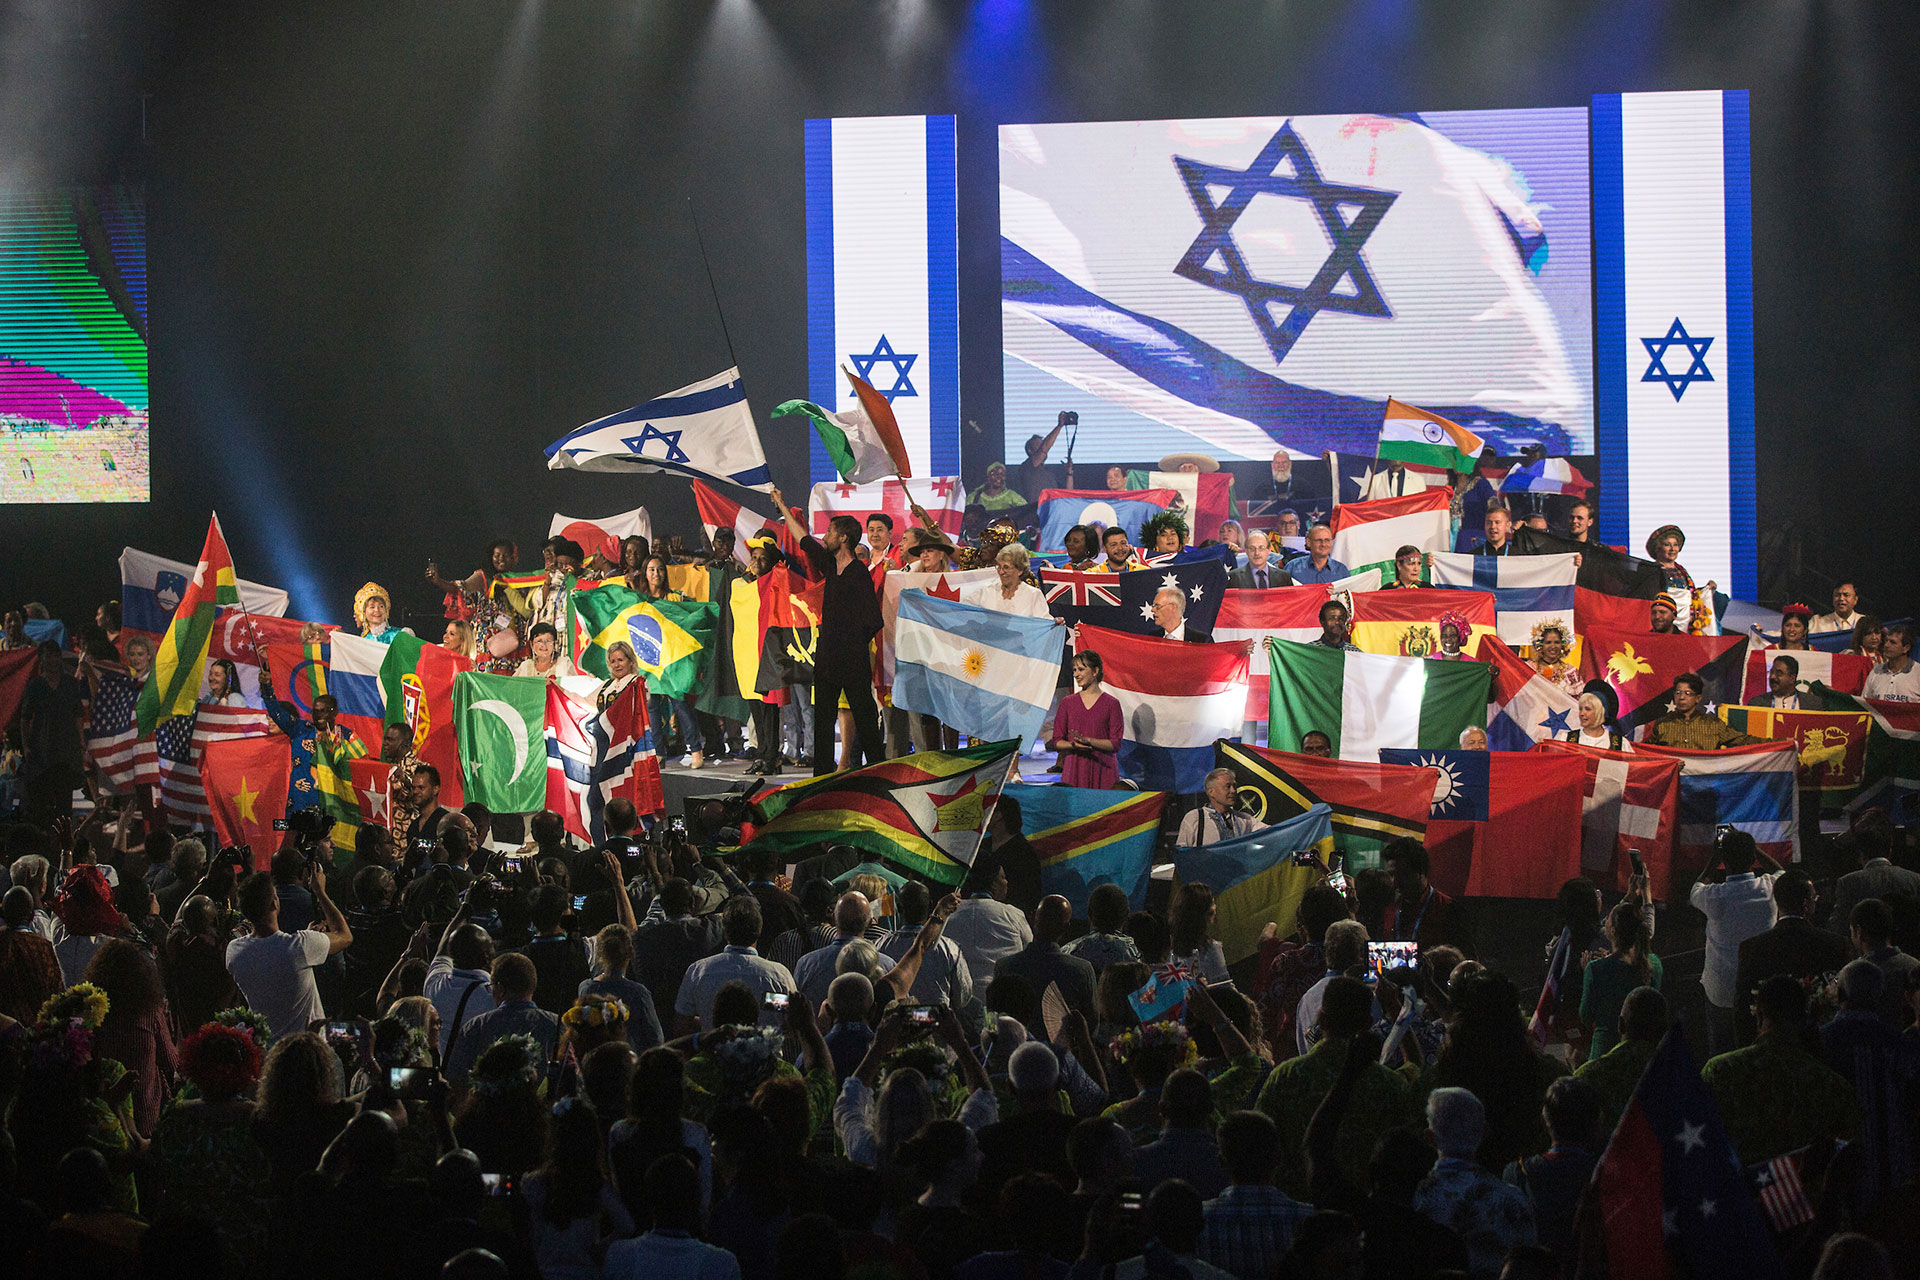 Thousands of Evangelical Christian pilgrims from around waving their national flags gathered for the Parade of Nations and opening ceremonies for the 2018 Feast of Tabernacles on September 24,2018 at the Pais Arena in Jerusalem. The Feast of Tabernacles is the Christian term for the weeklong Jewish holiday of Sukkot. In biblical times the holiday was marked by a pilgrimage to the Temple in Jerusalem. Numerous events are planned in Jerusalem , including a march and other celebrations for the week long holiday . (Photo by Heidi Levine for The GroundTruth Project).